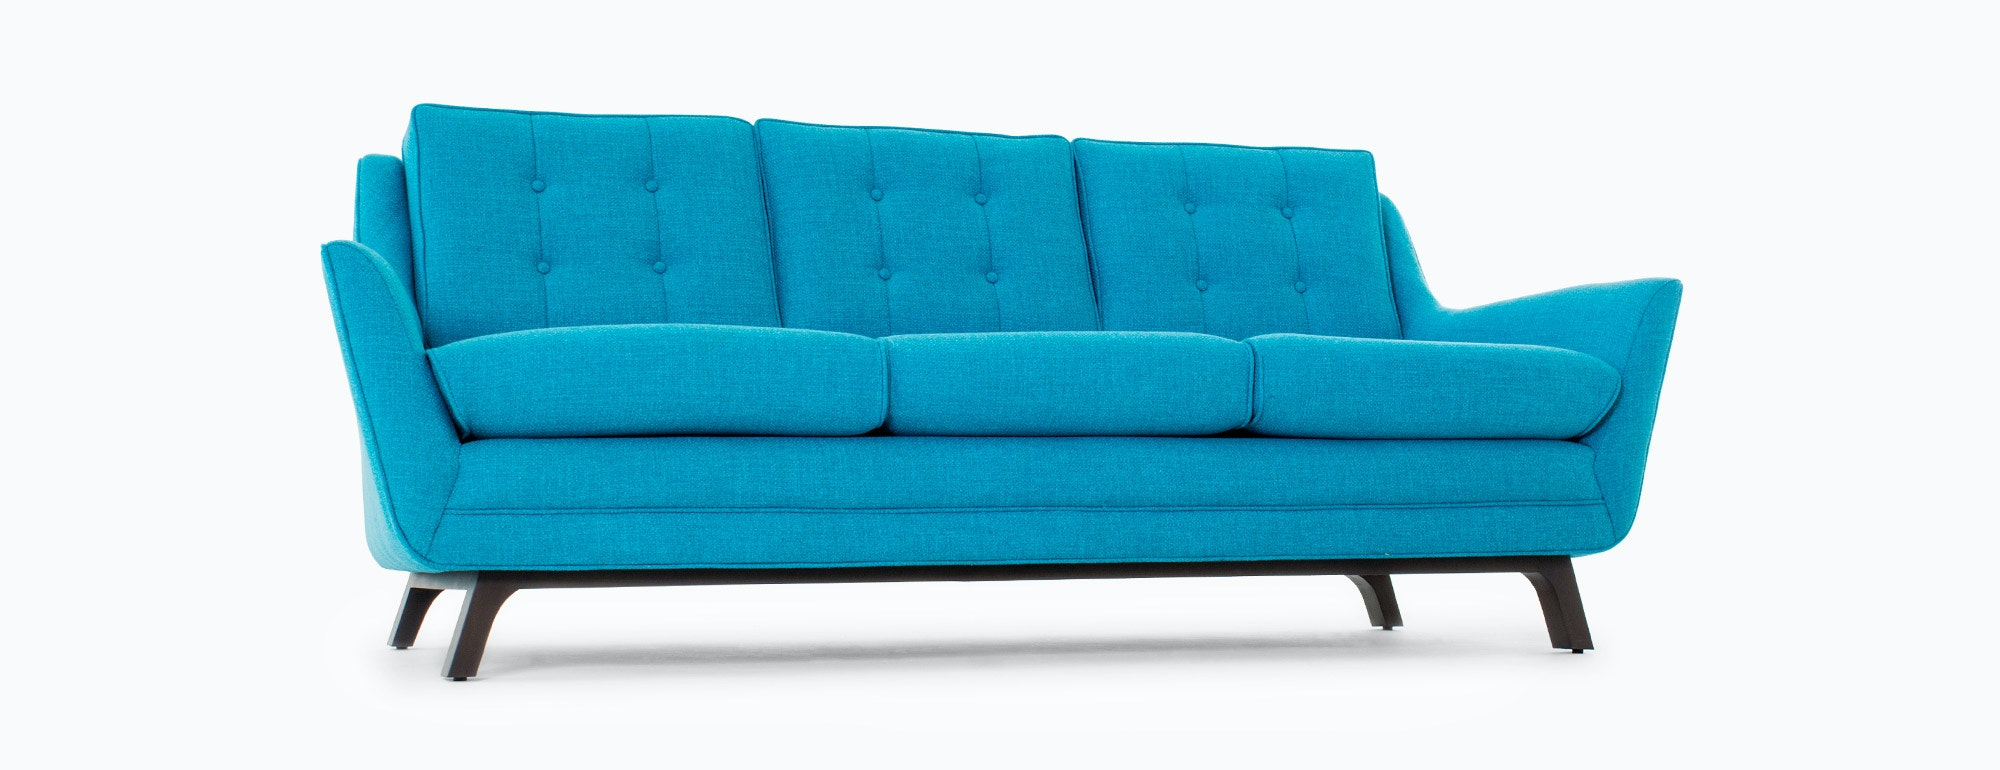 Eastwood Sofa Joybird : hero eastwood sofa 2 from joybird.com size 2000 x 770 jpeg 231kB